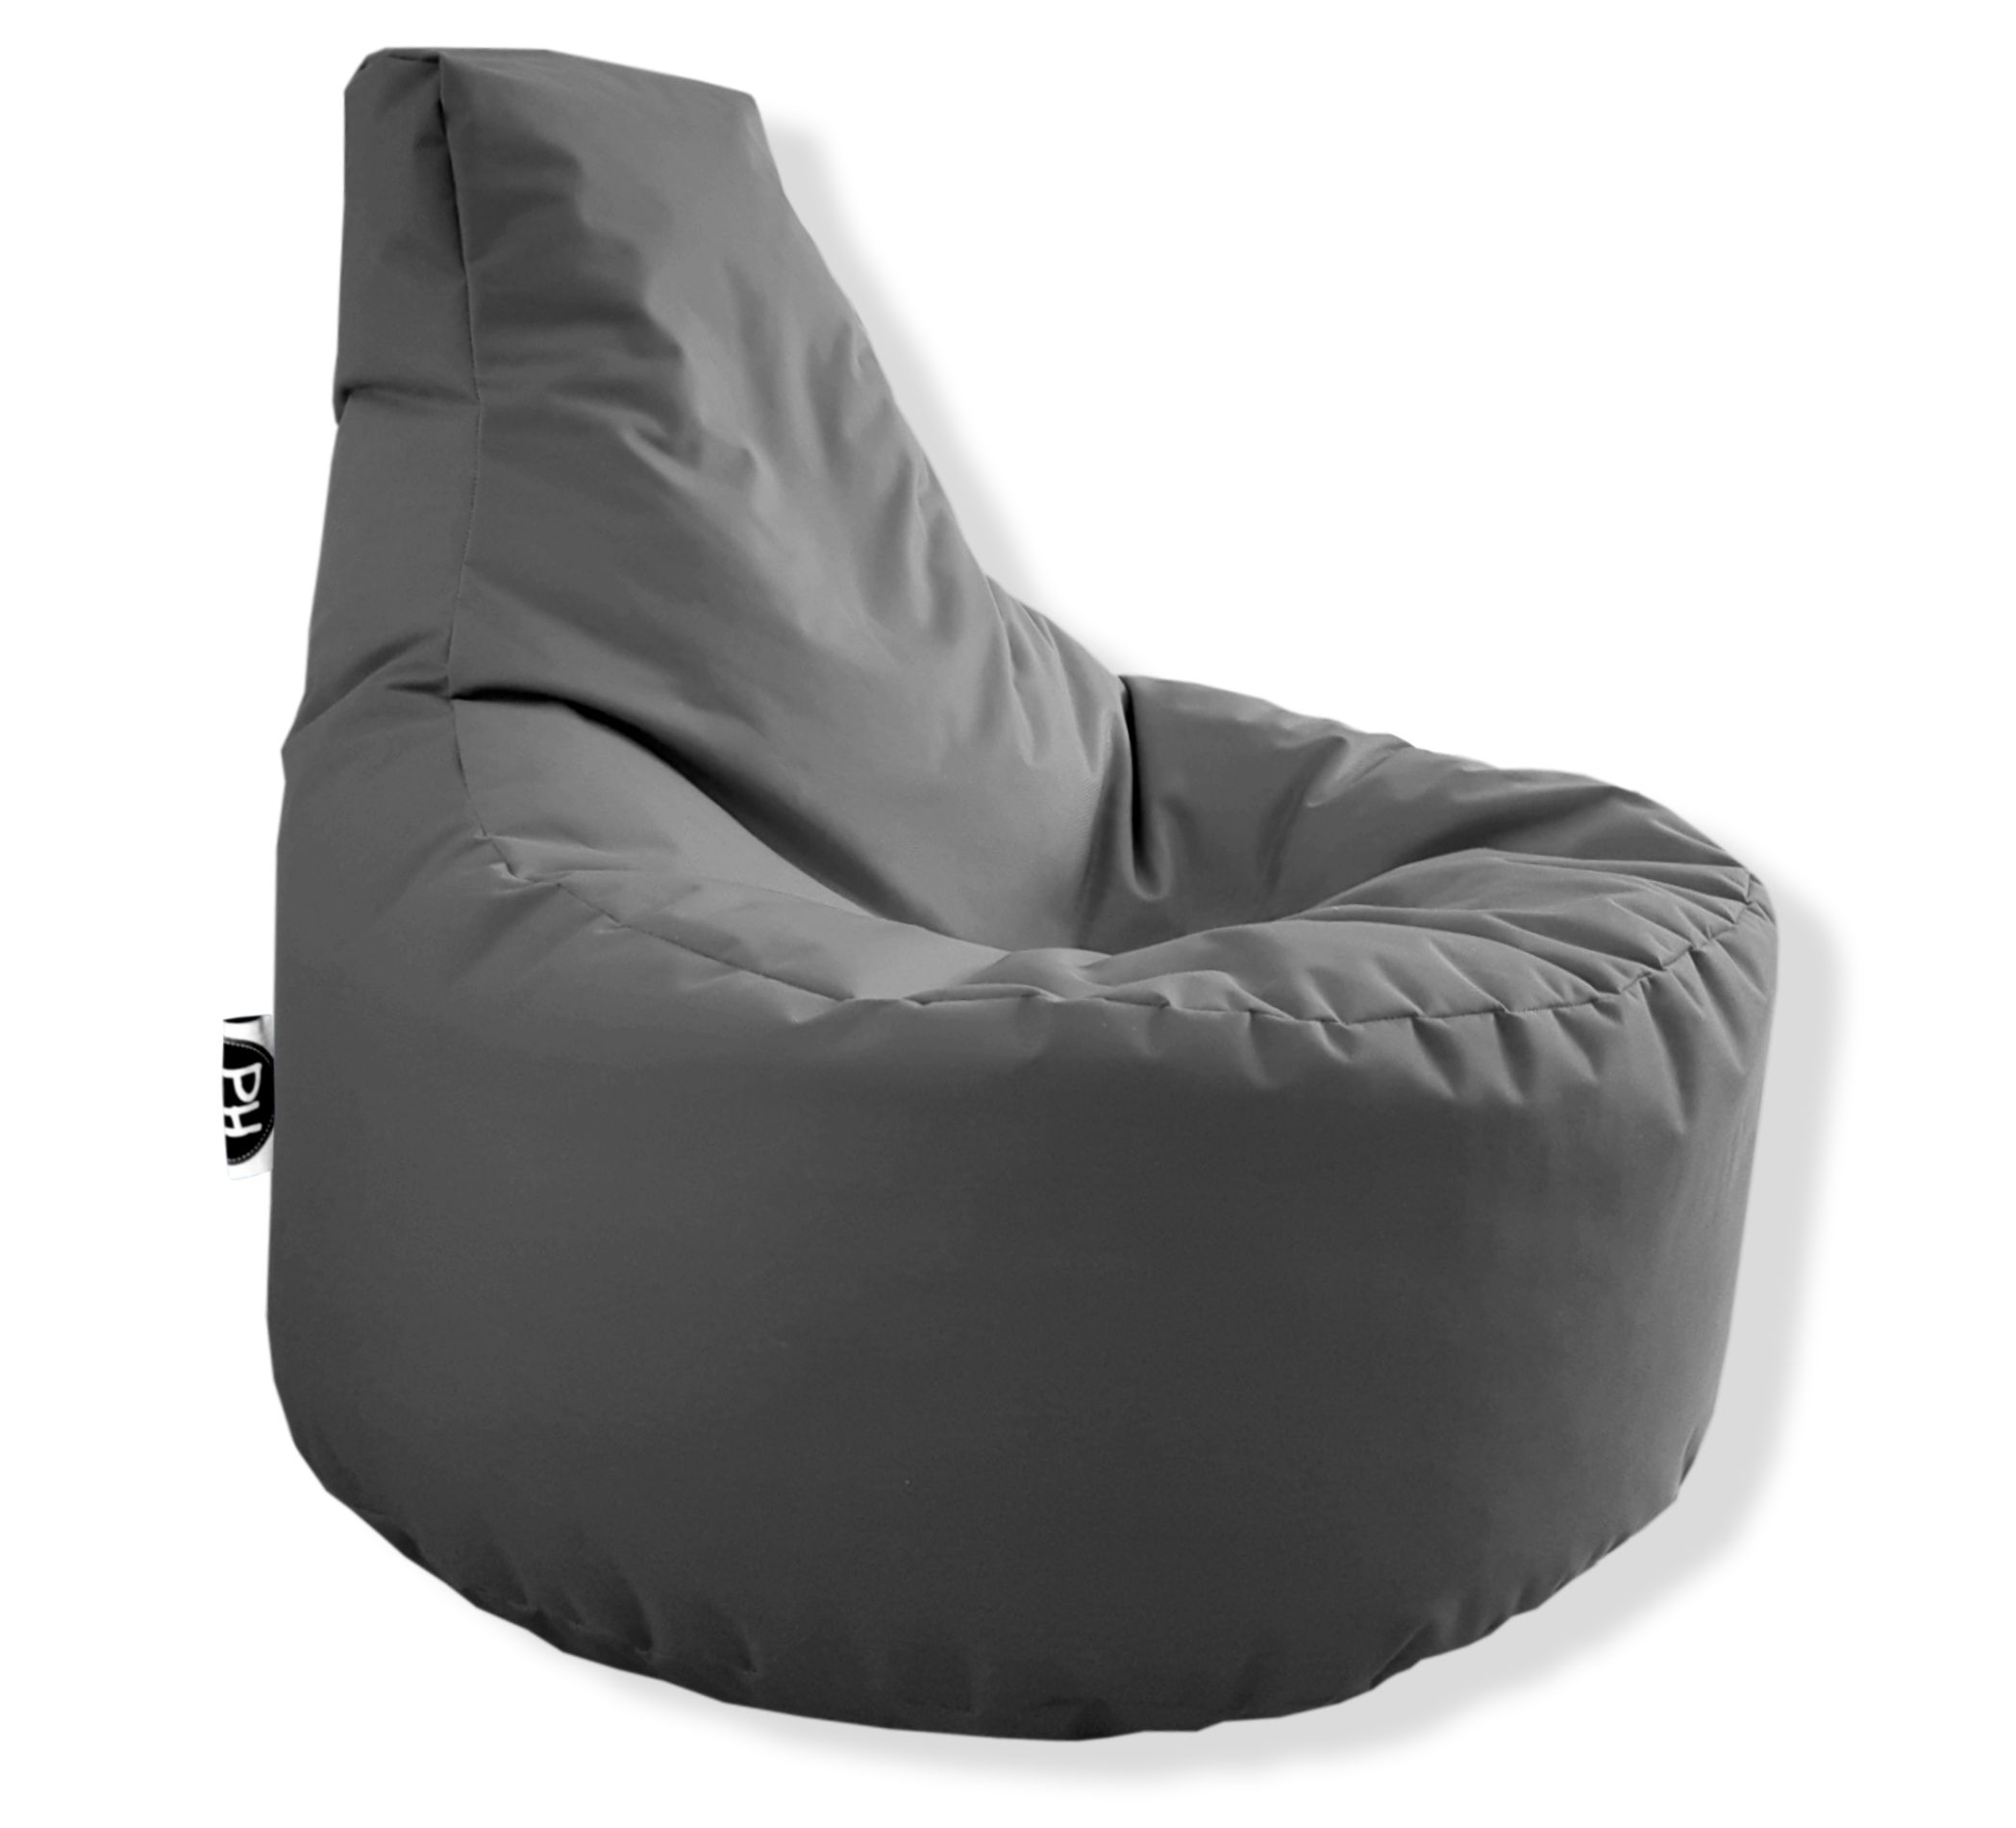 Gamer Sessel Amazon Patchhome Gamer Sitzsack Sitzkissen Bean Bag In Diversen